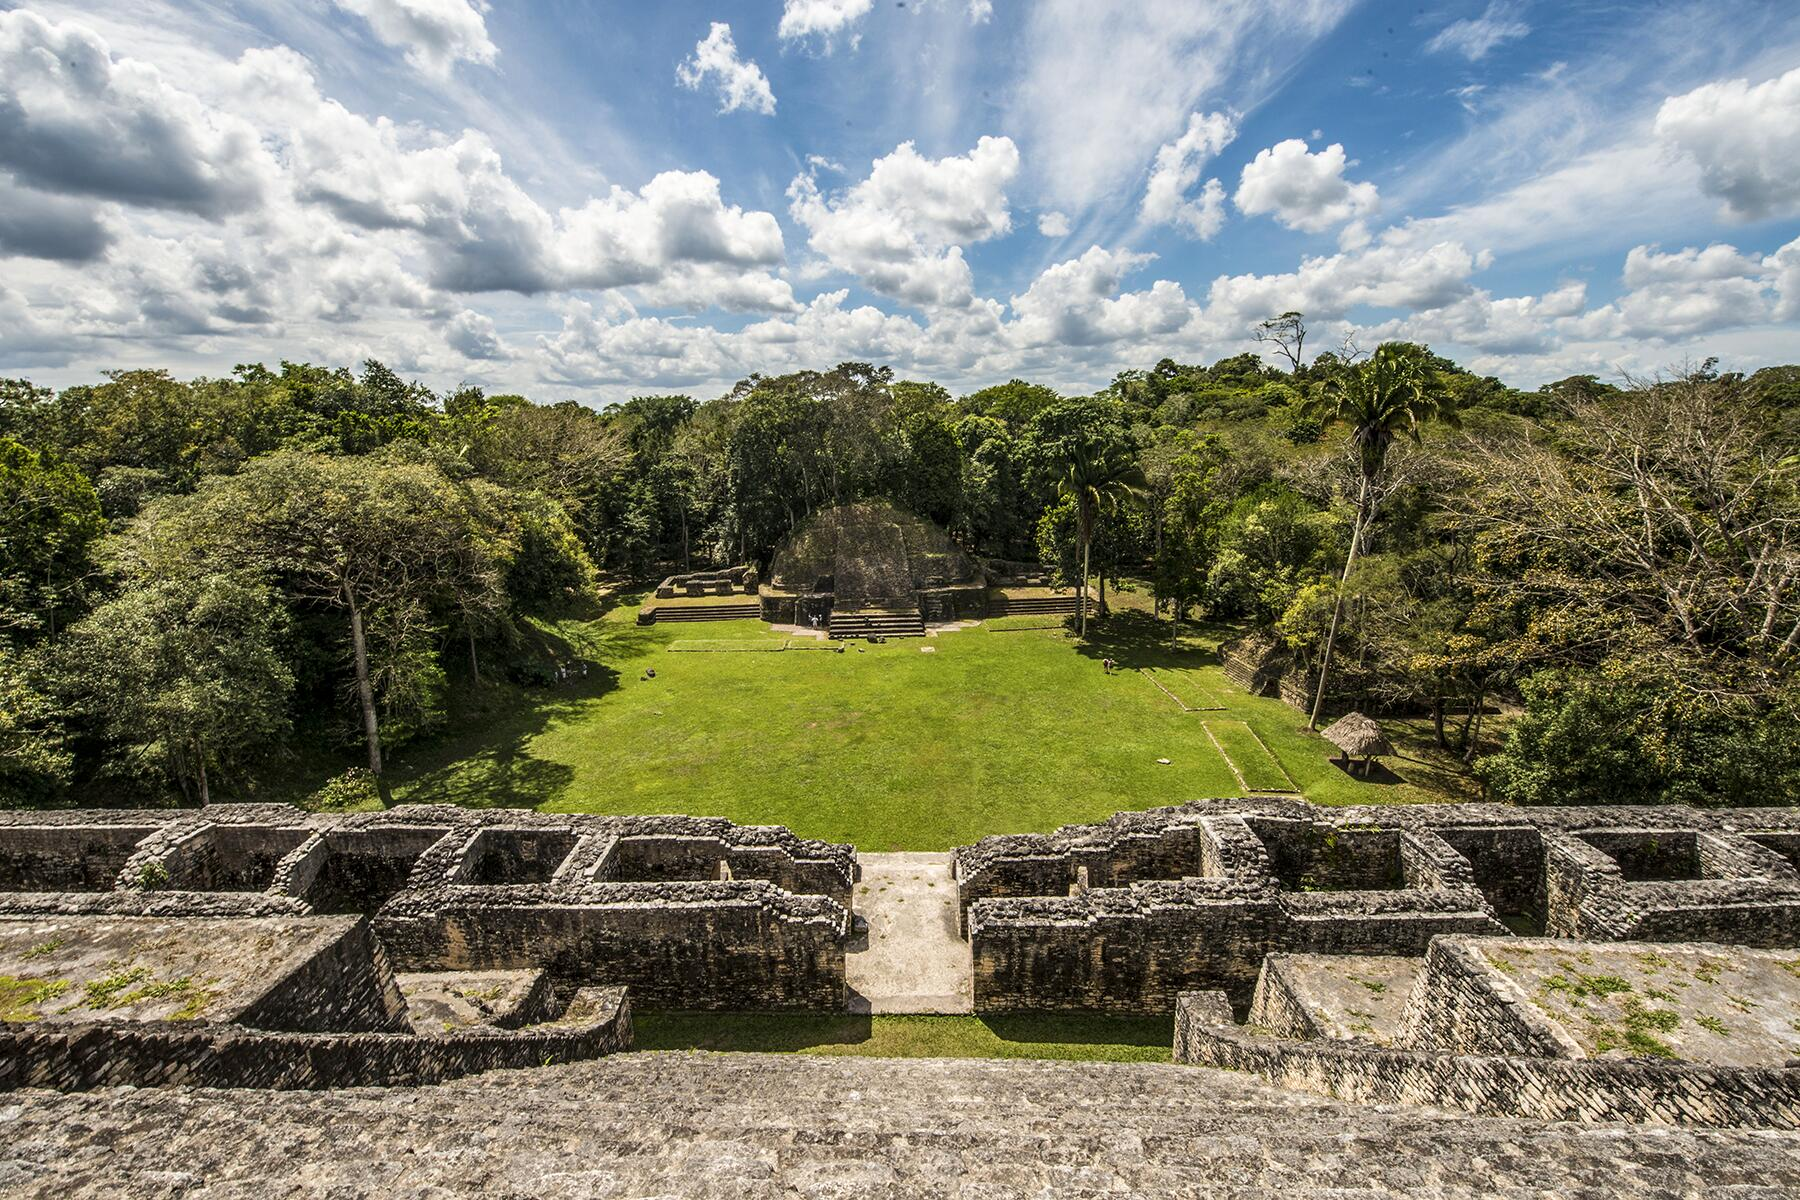 These 10 Mayan Ruins in Belize Will Make Your Jaw Drop